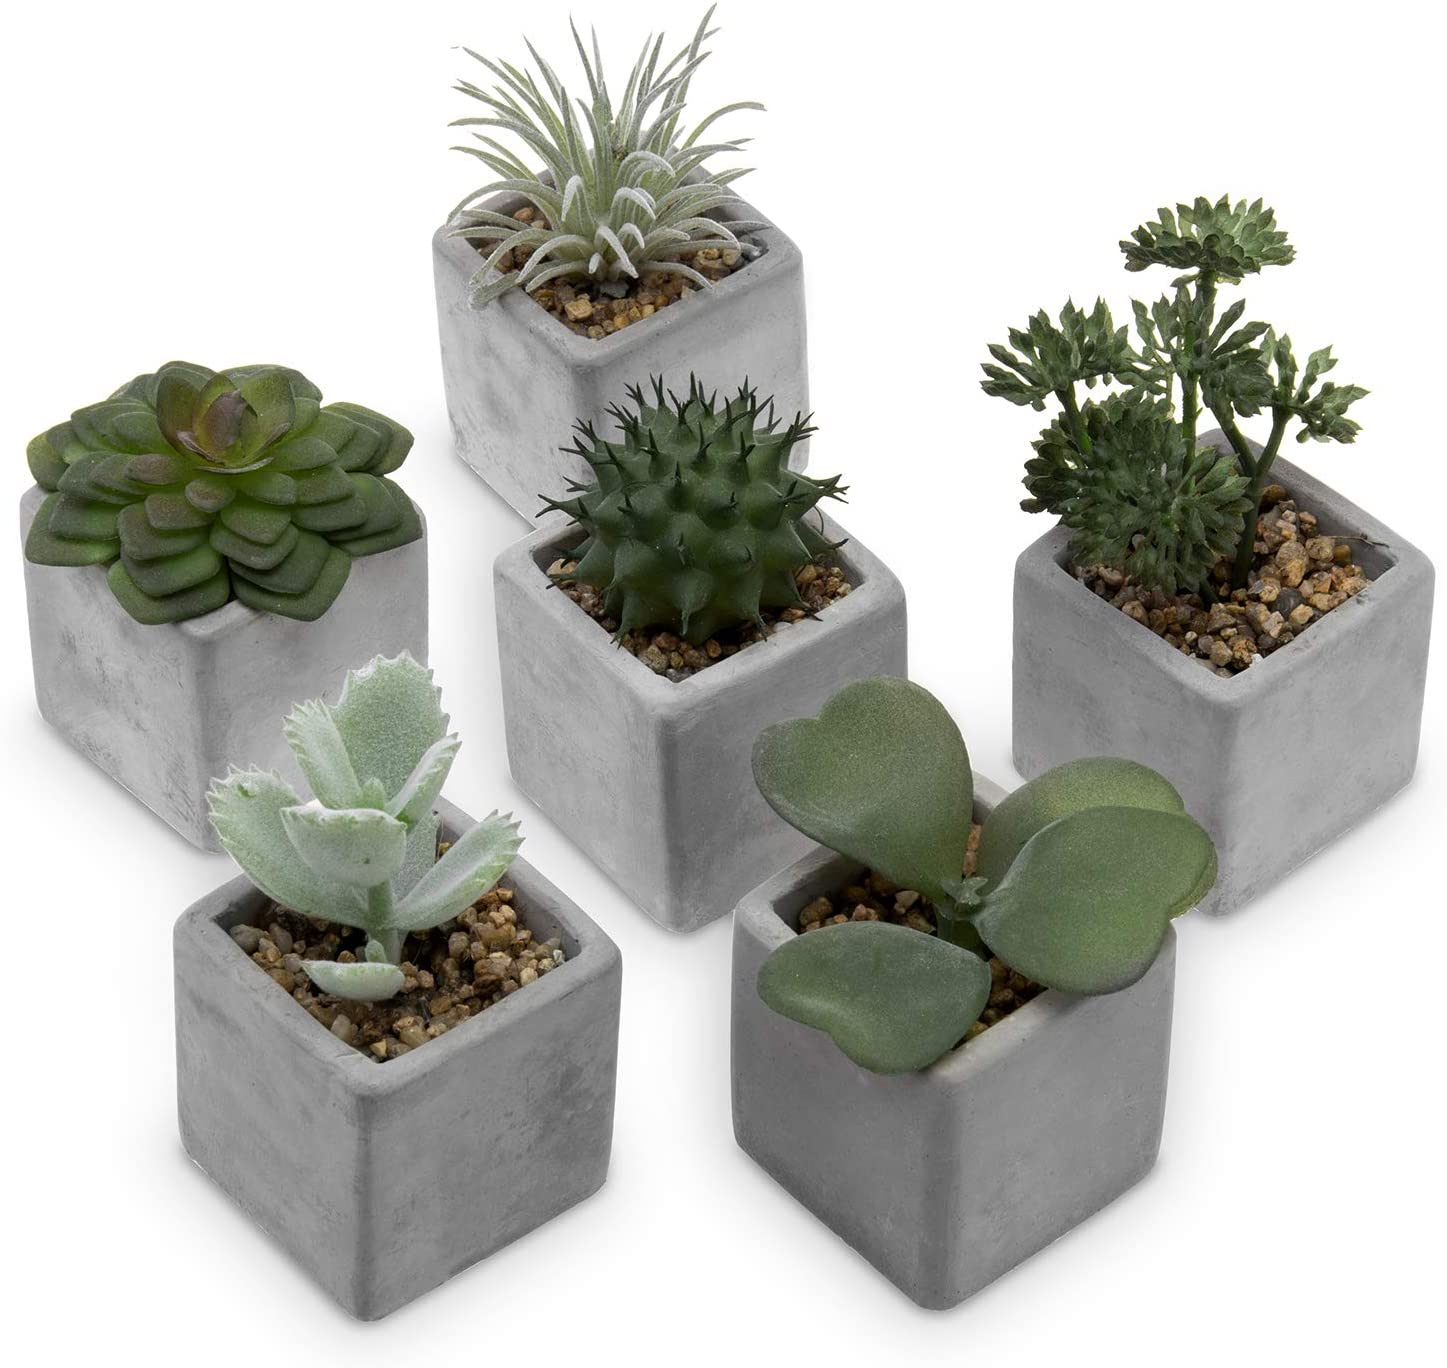 MyGift Assorted Artificial Mini Succulent & Cactus Plants with Square Gray Cement Pots, Set of 6